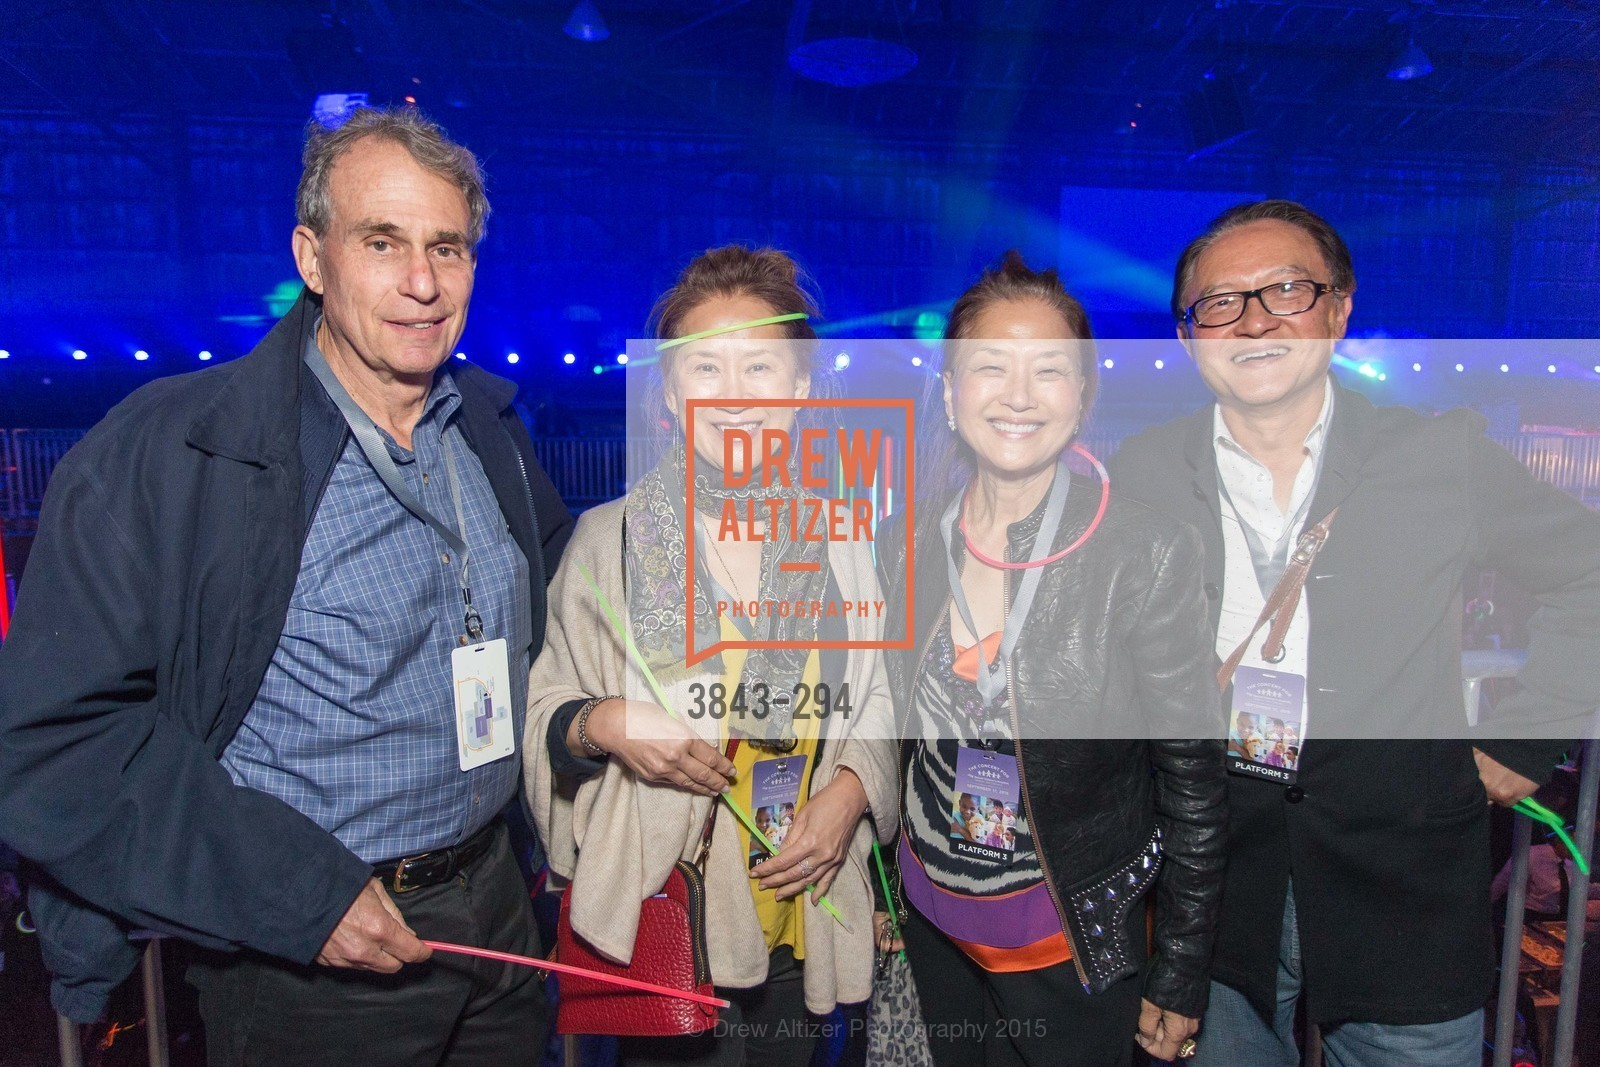 John Pollock, Olivia Decker, Tom Chan, The Concert For UCSF Benioff Children's Hospital, Pier 70, September 17th, 2015,Drew Altizer, Drew Altizer Photography, full-service agency, private events, San Francisco photographer, photographer california